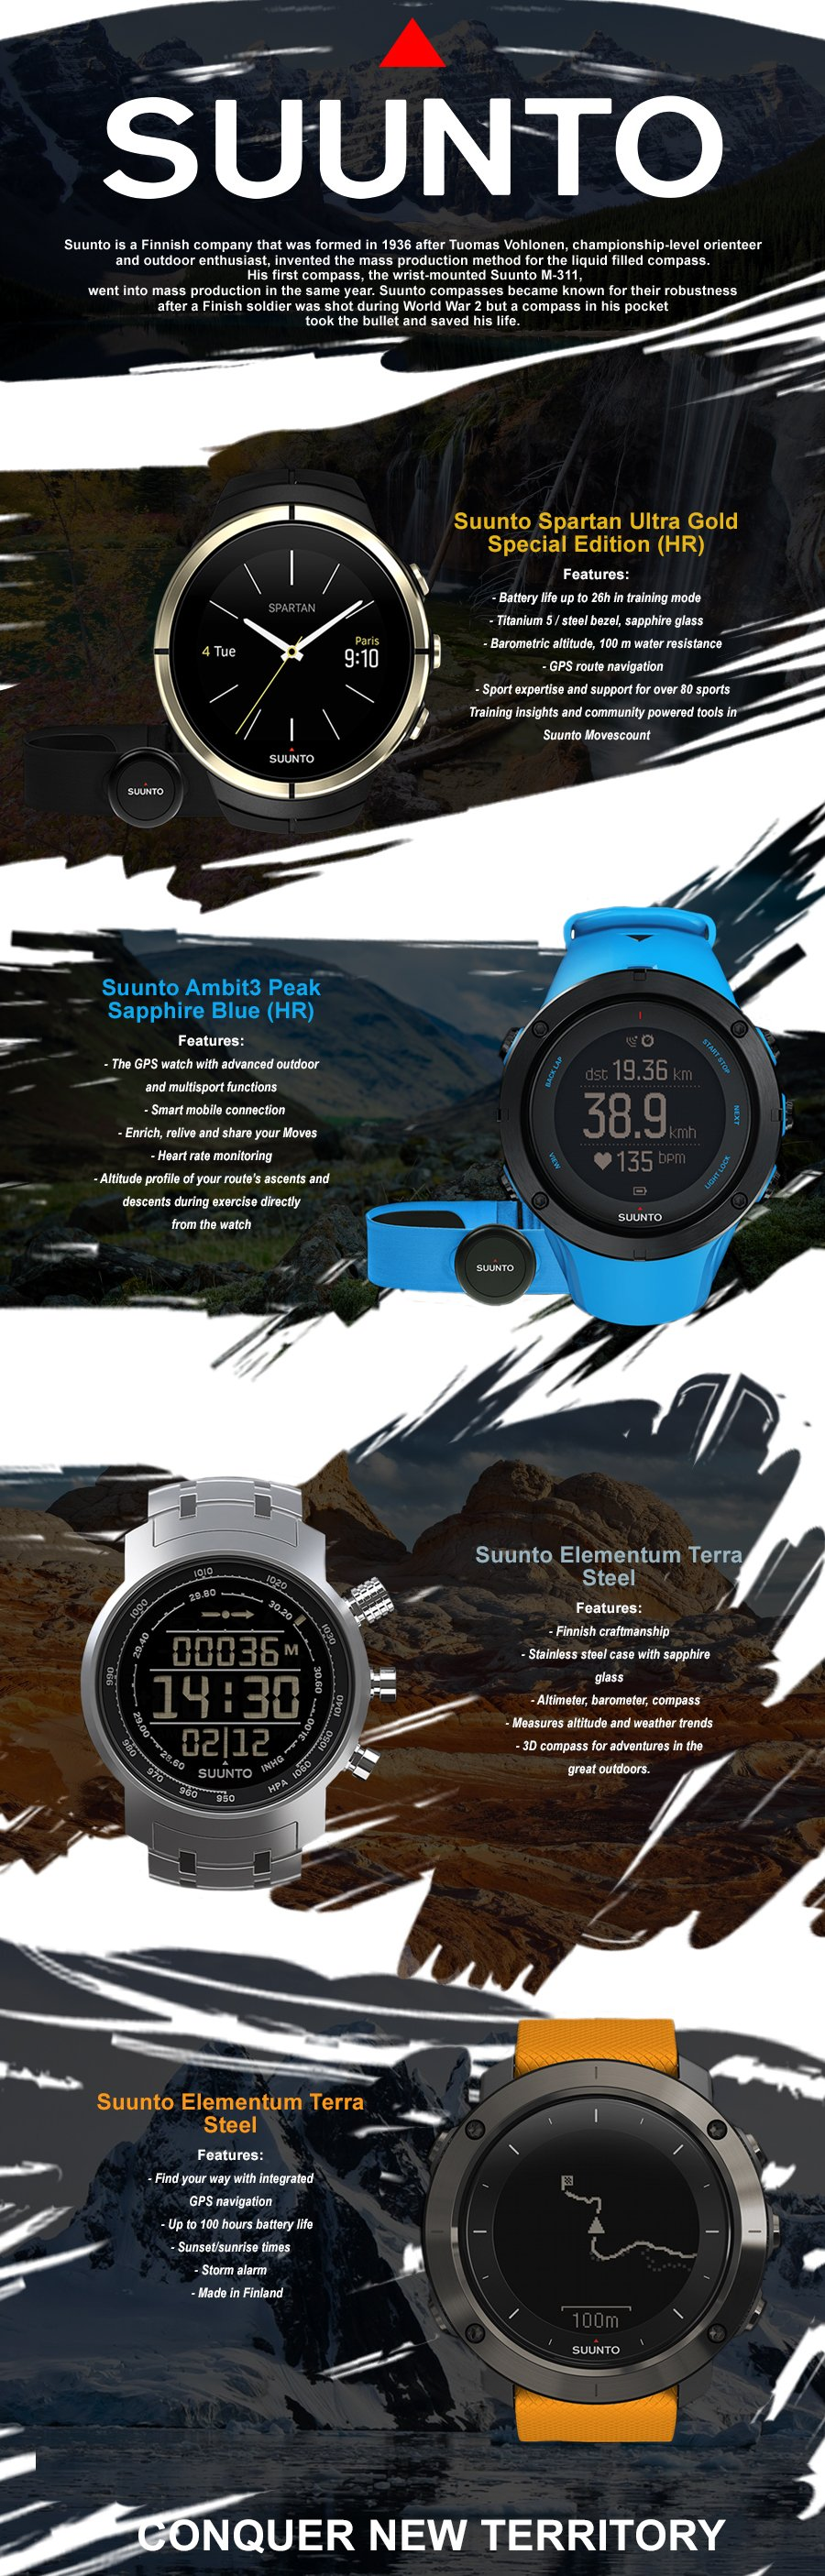 Suunto Info Graphic